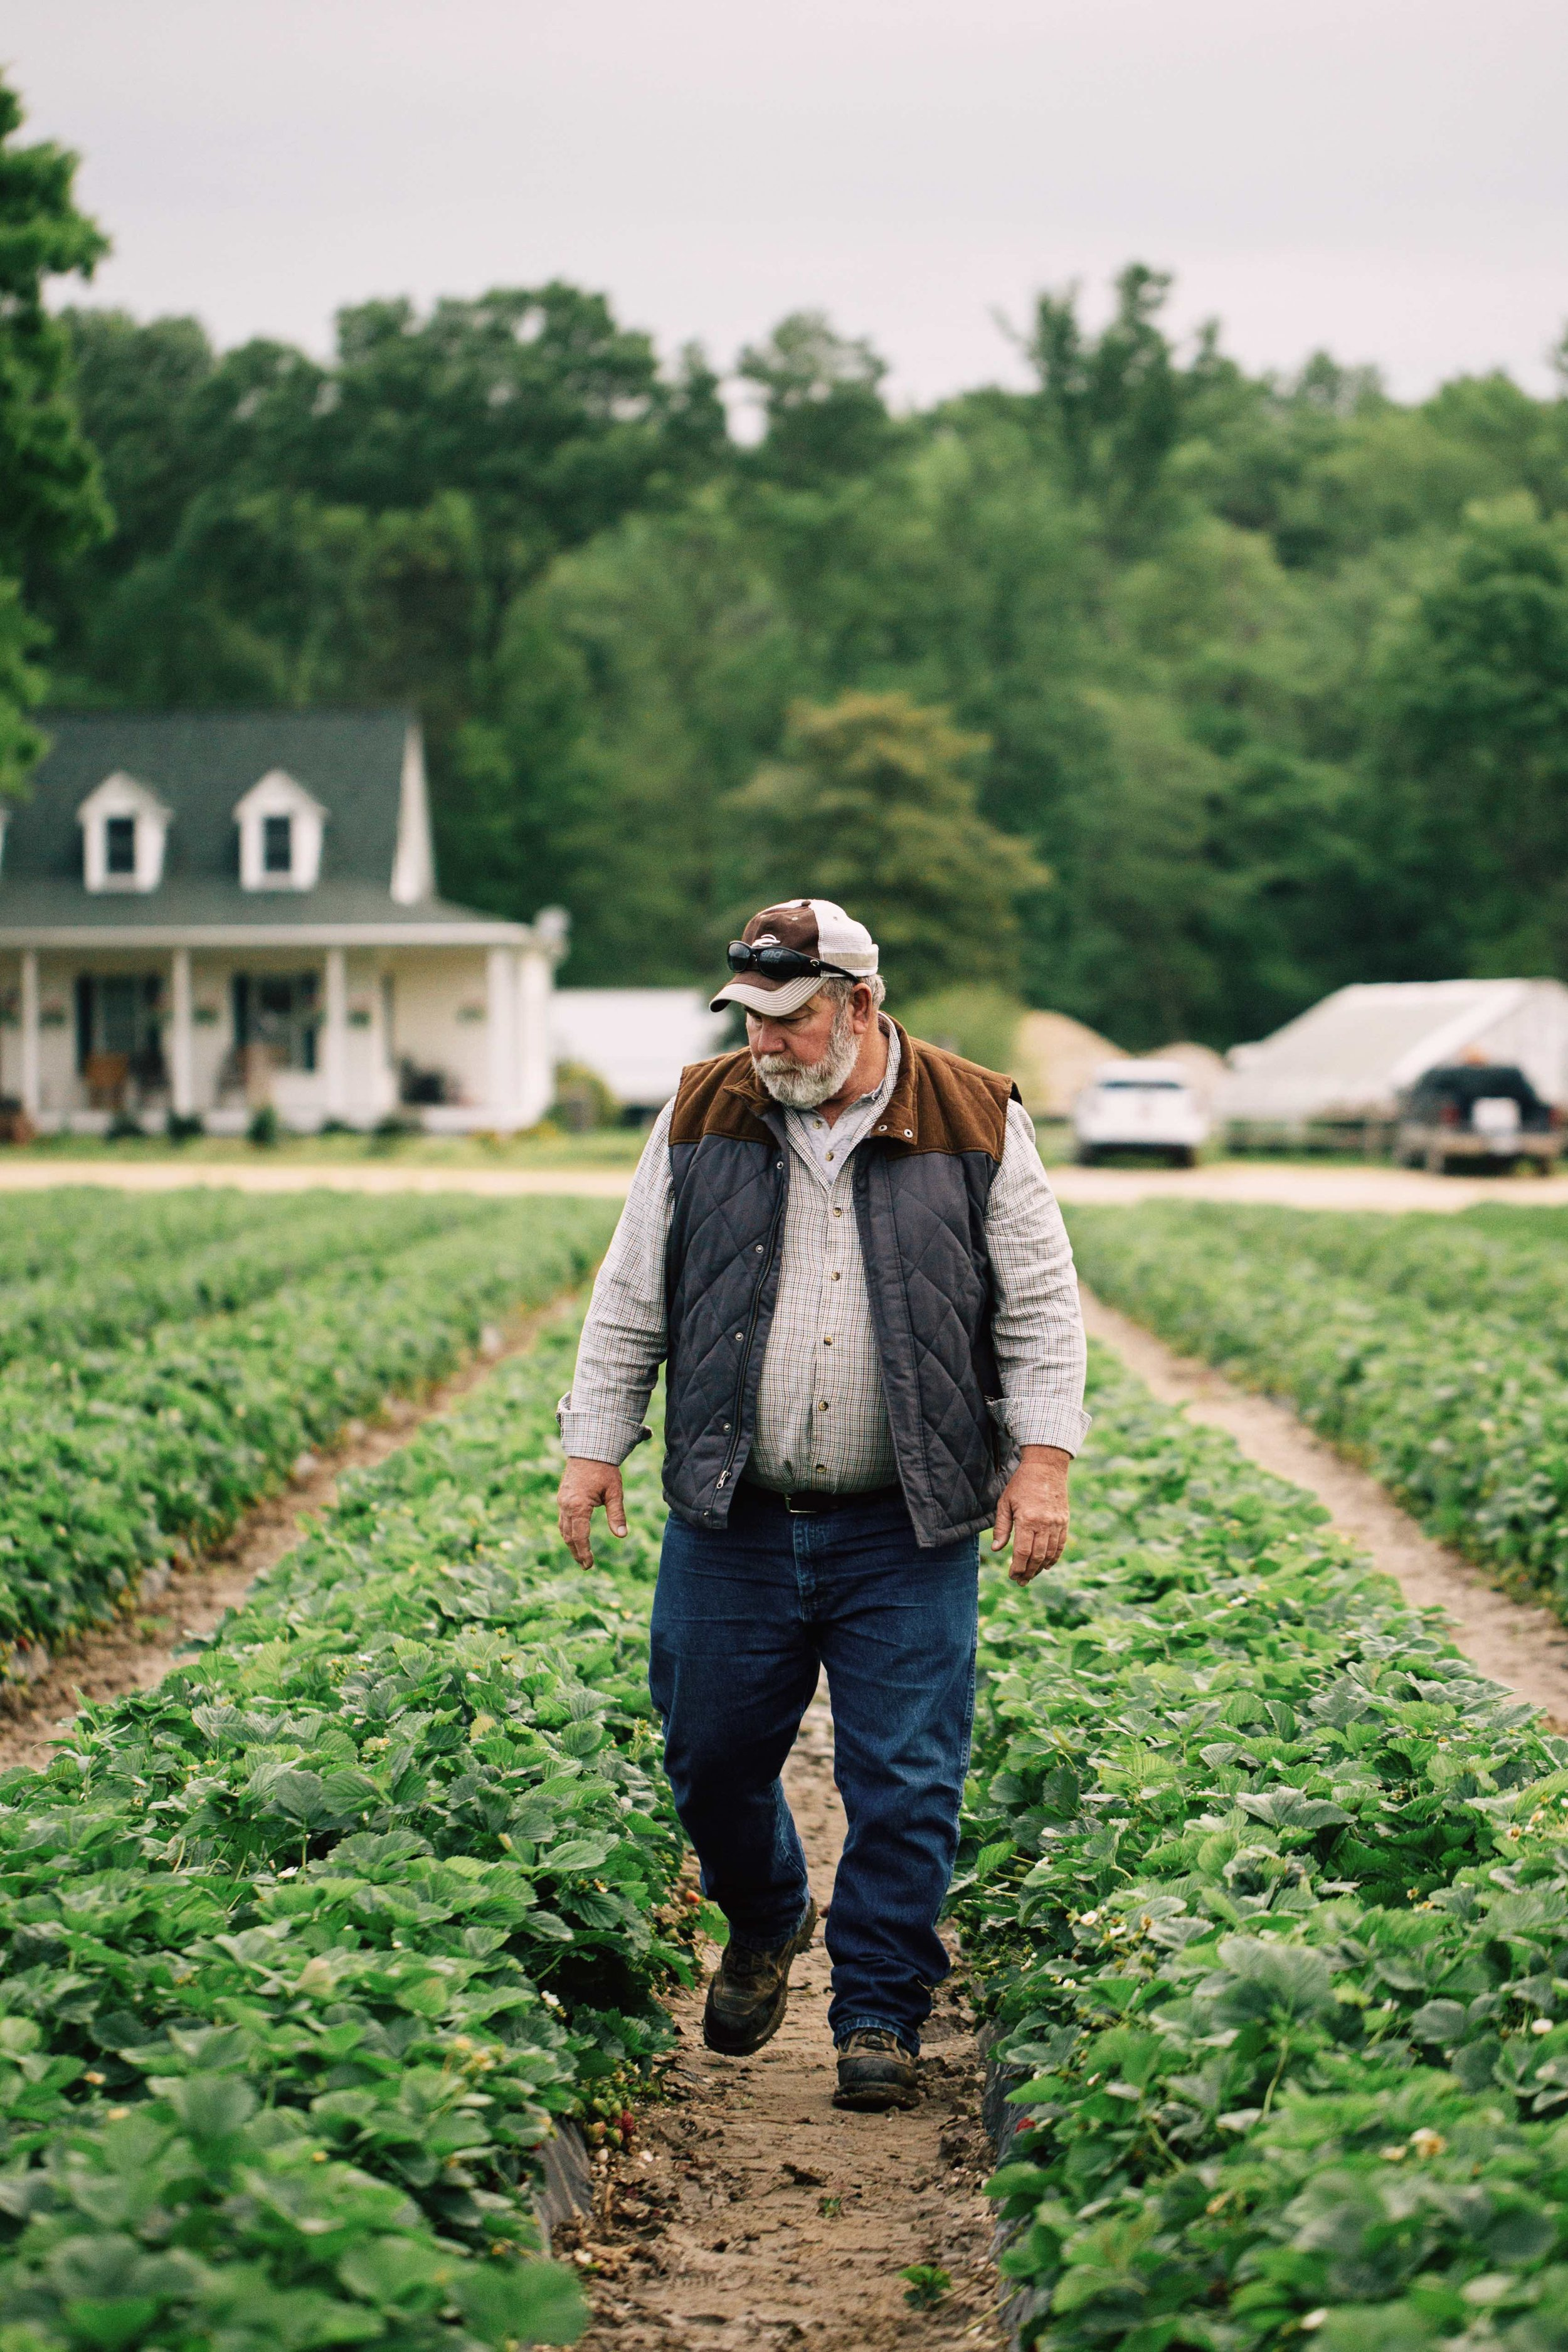 russell shlagel walks down rows of his prized strawberries where tobacco once grew. once a tobacco farm in charles county maryland, shlagel farms is now known for its high quality produce.